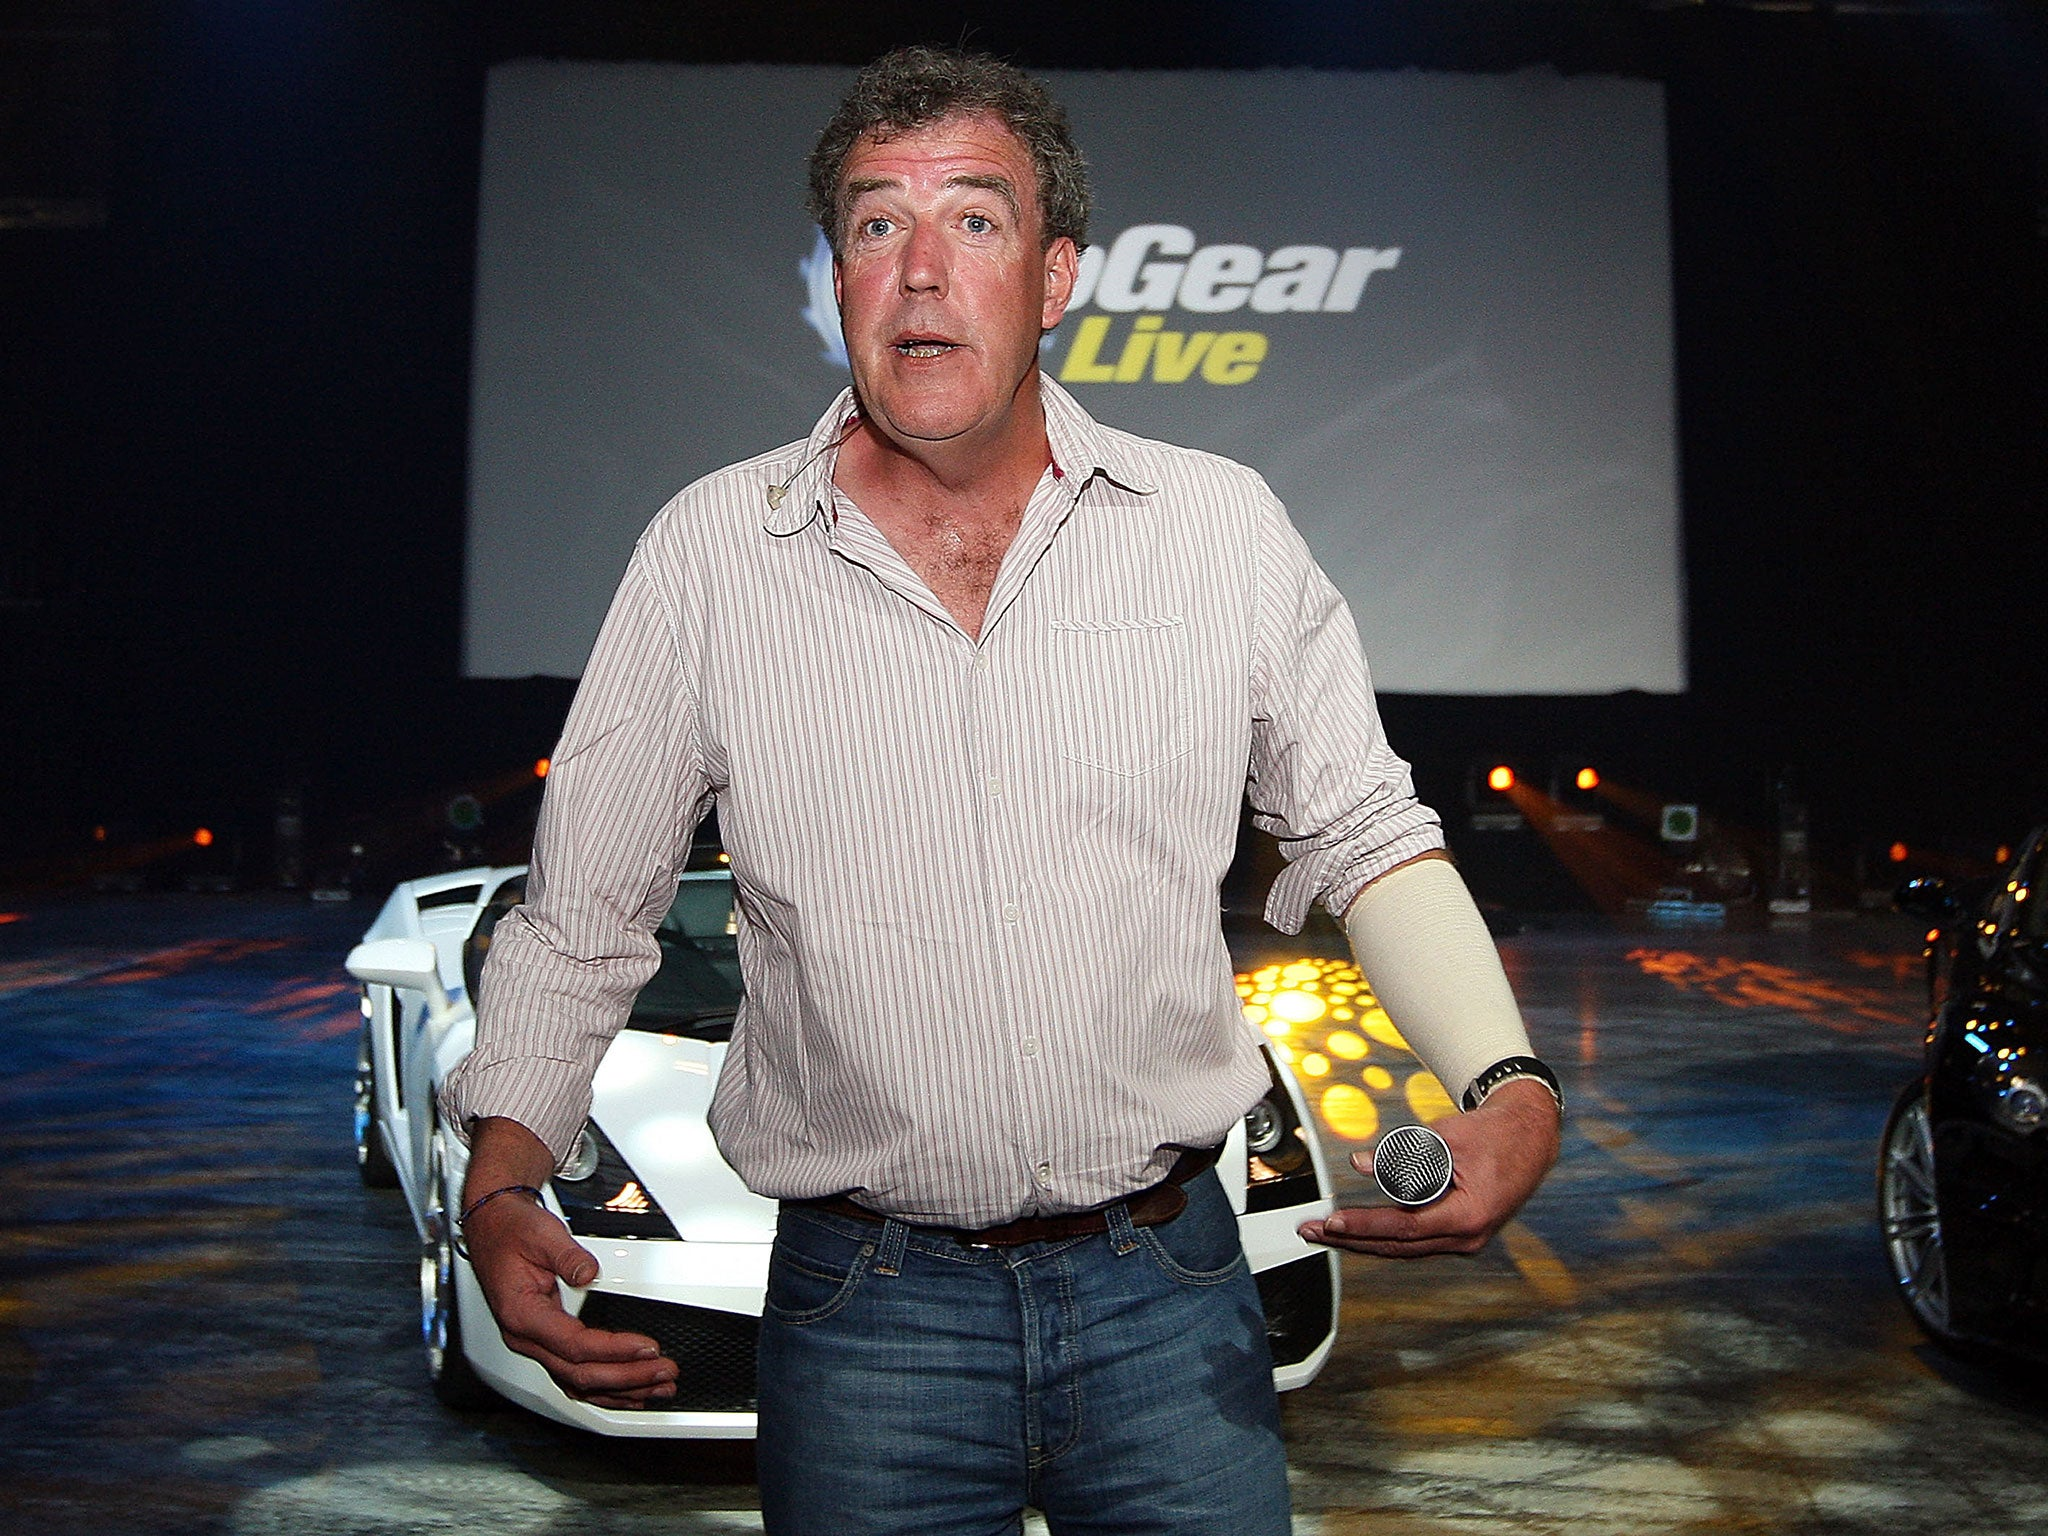 Jeremy clarkson suspended by bbc top gear presenter punched producer because he didn t have dinner ready the independent